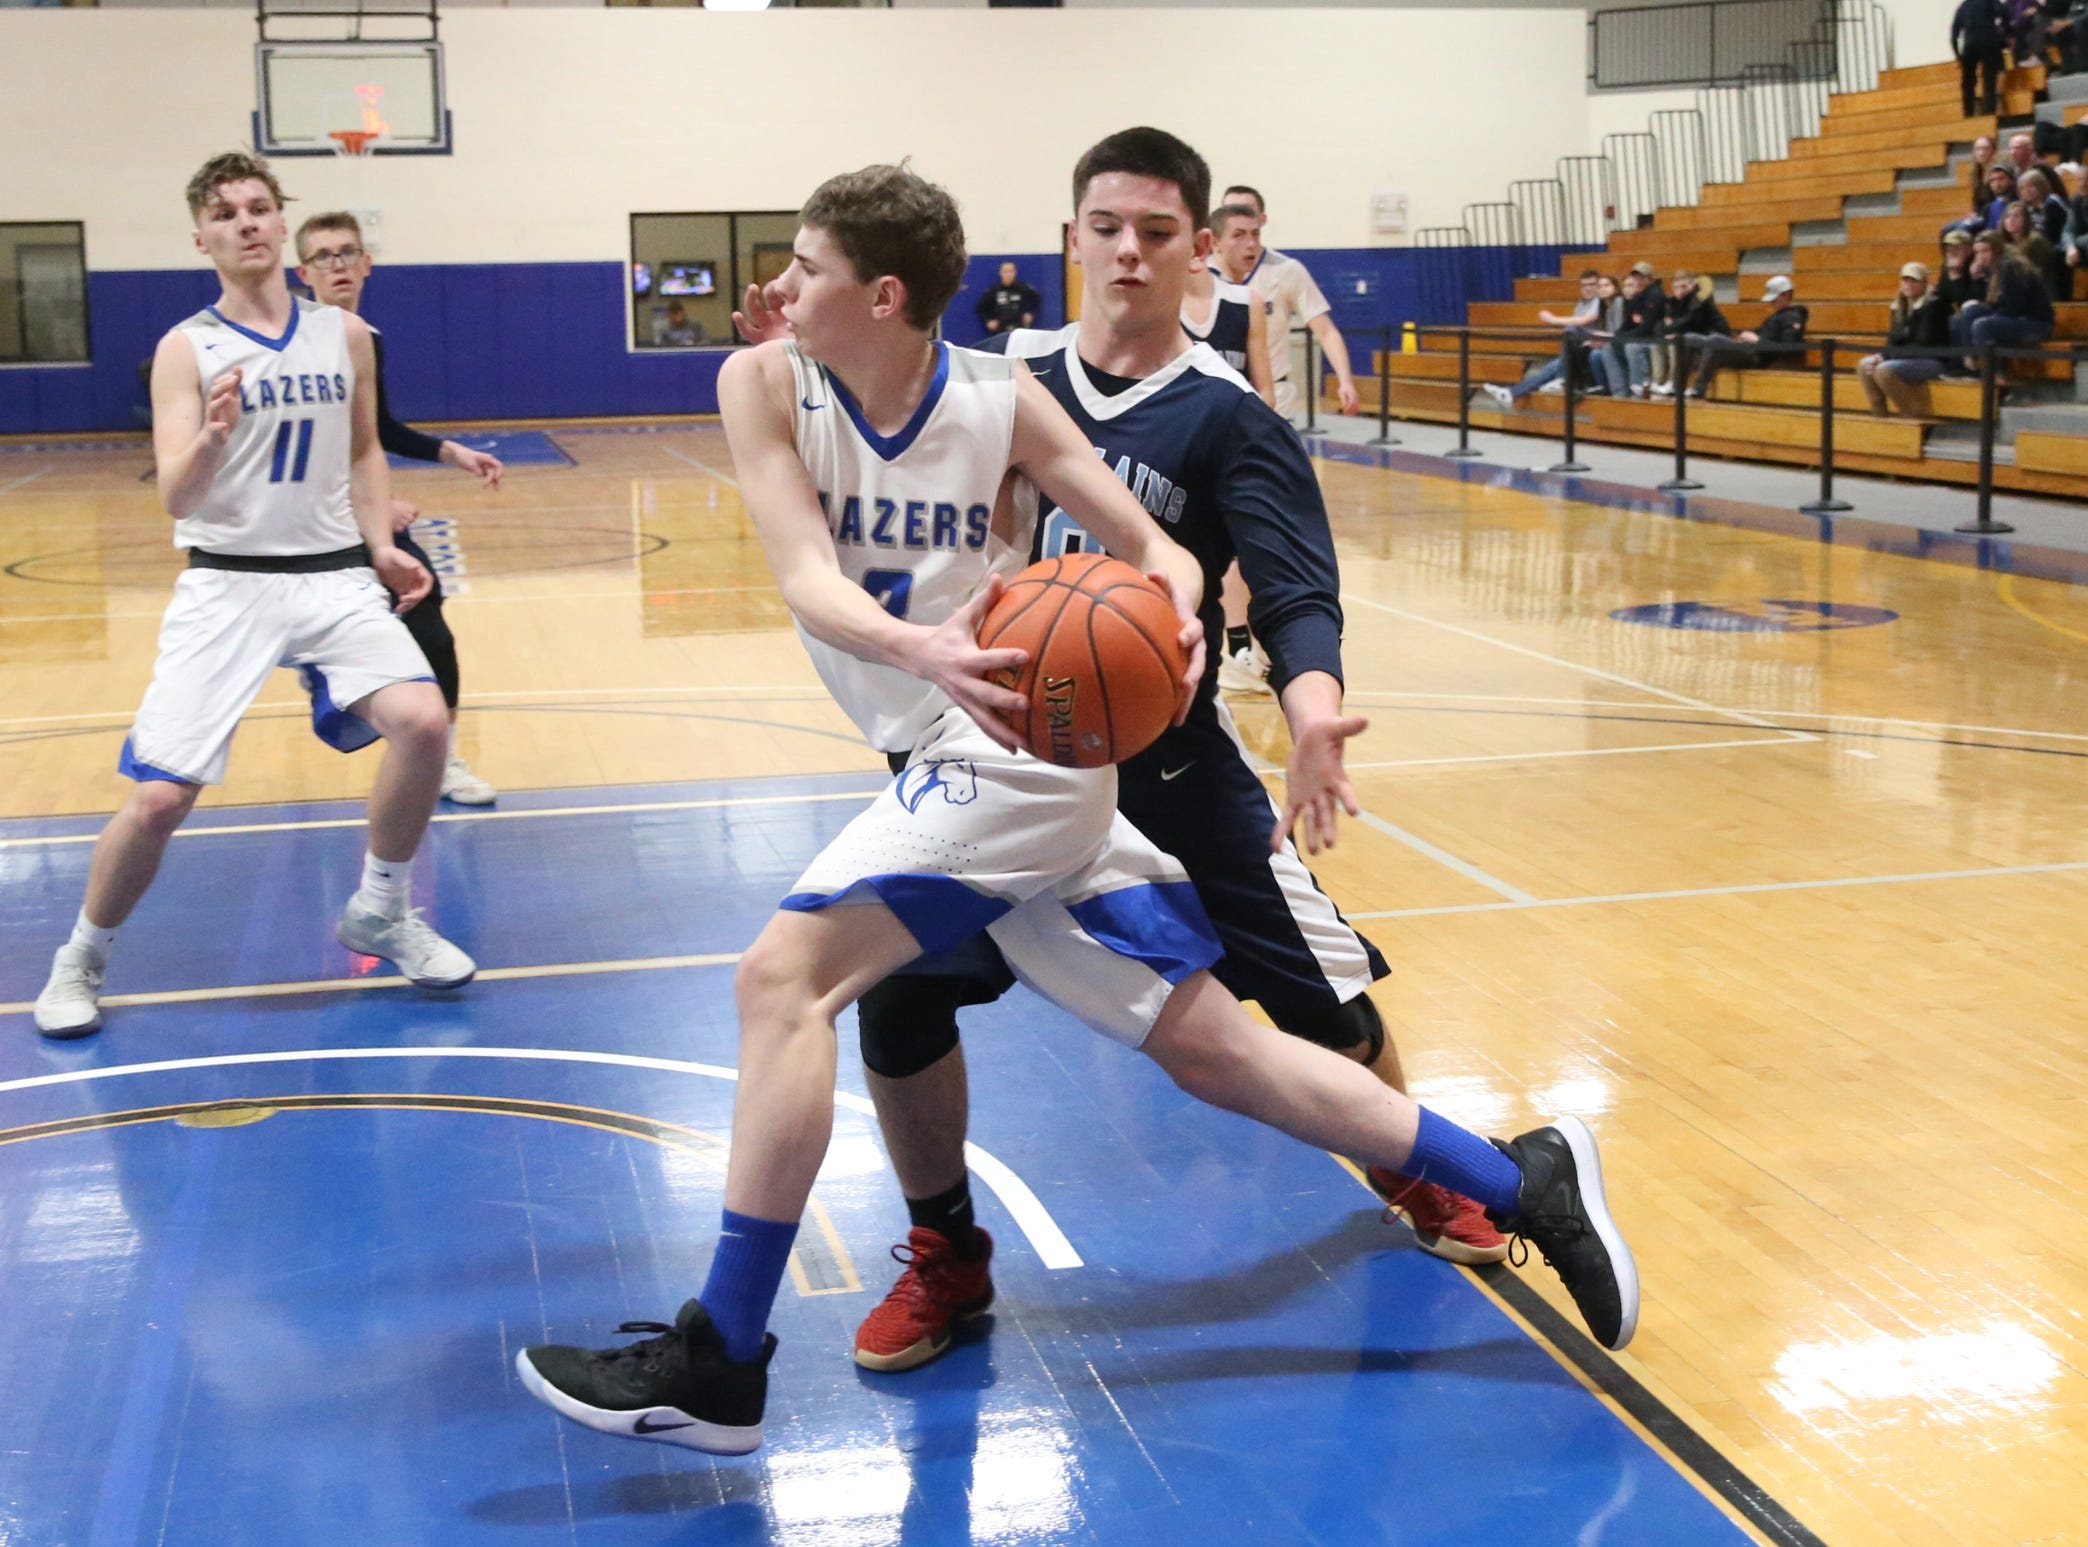 Sebastian Kopilak (3) dribes the baseline against Pine Plains' Evan Proper (0) in the boys Class C section final basketball game at Mount St. Mary College in Newburgh on Thursday, February 28, 2019.